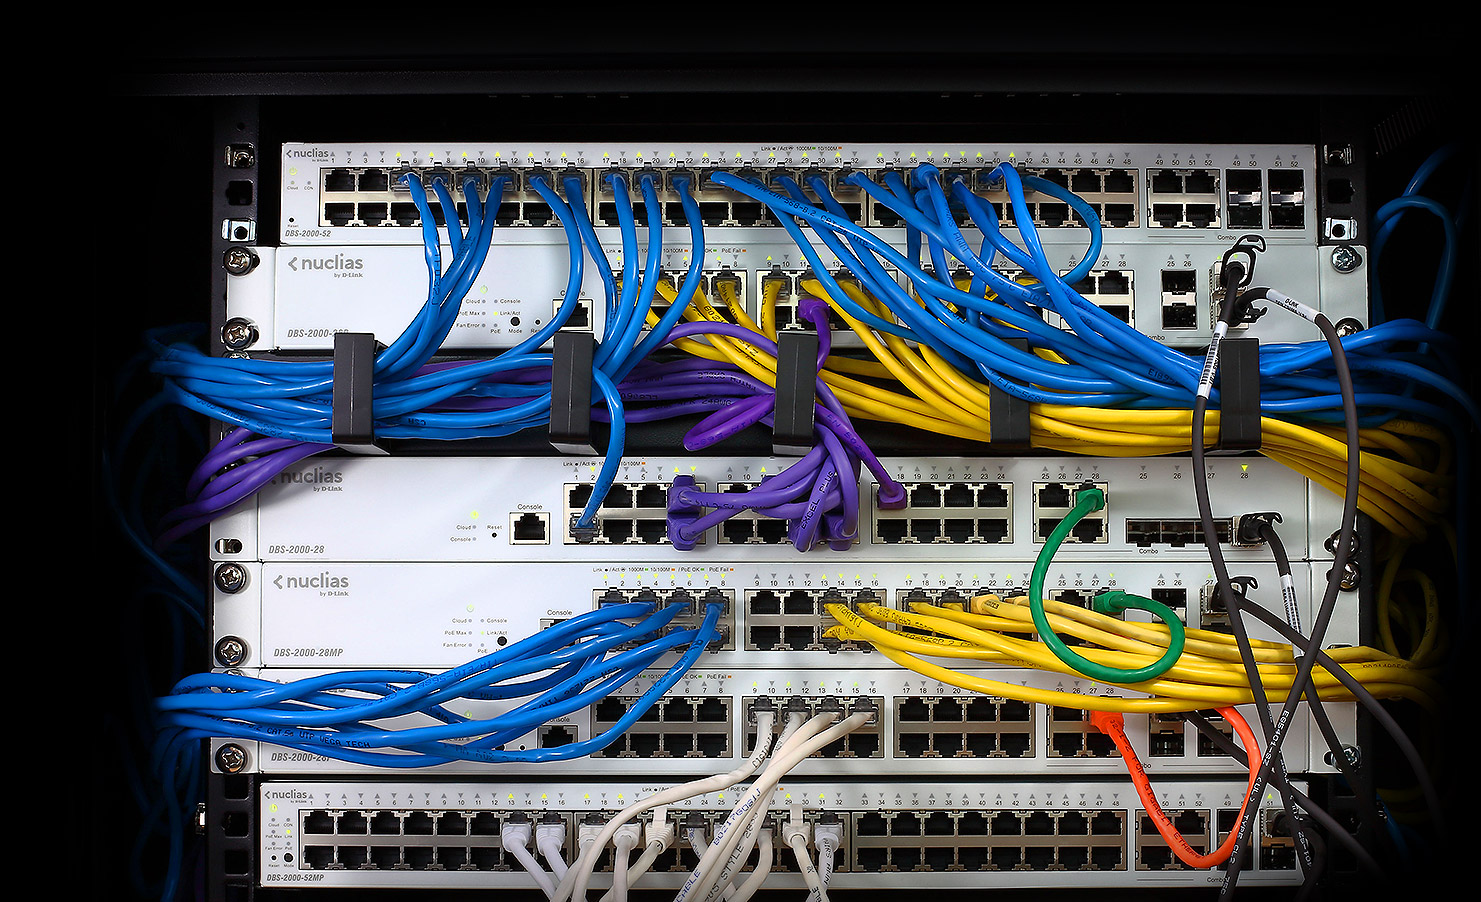 Nuclias Cloud-Managed Switches in a rack